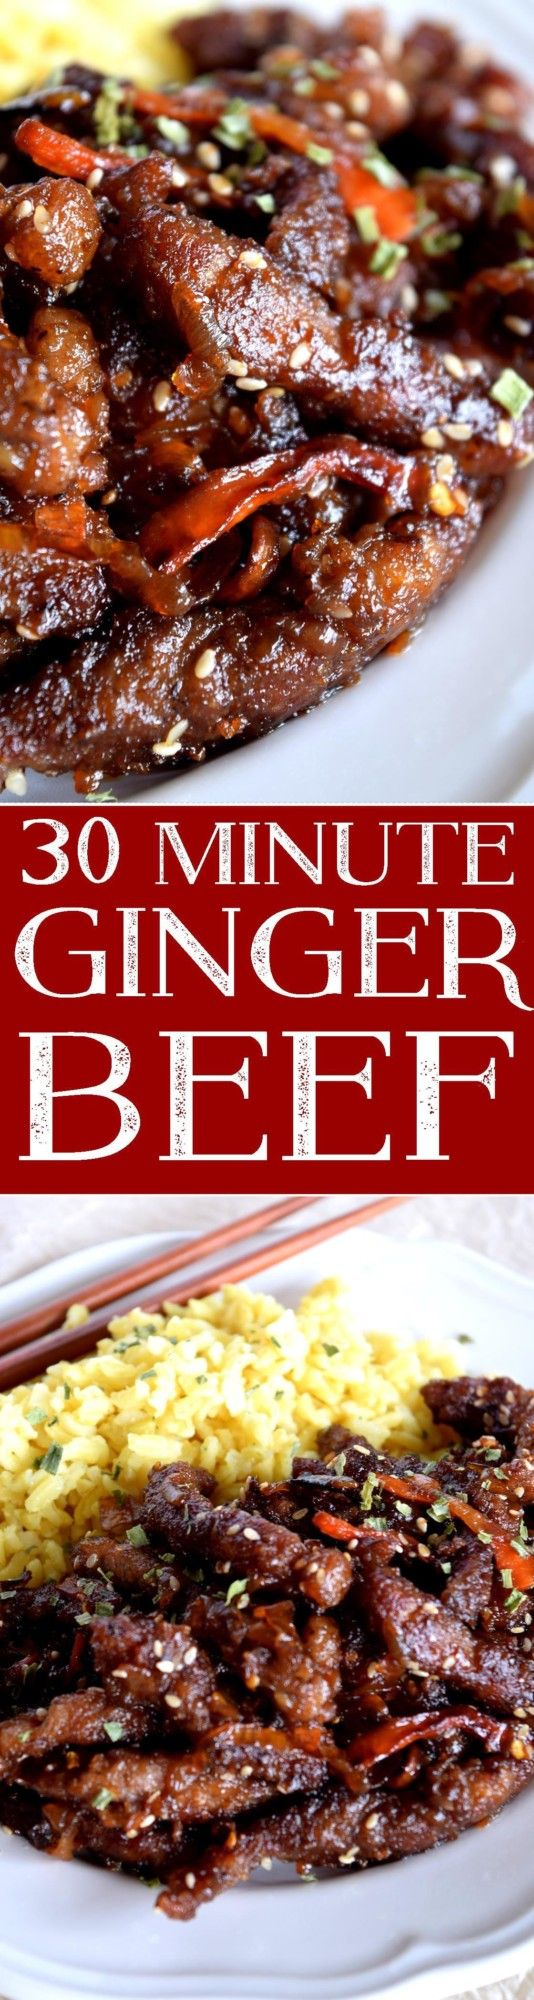 30-minute-ginger-beef...switch brown sugar for keto friendly sweeter!